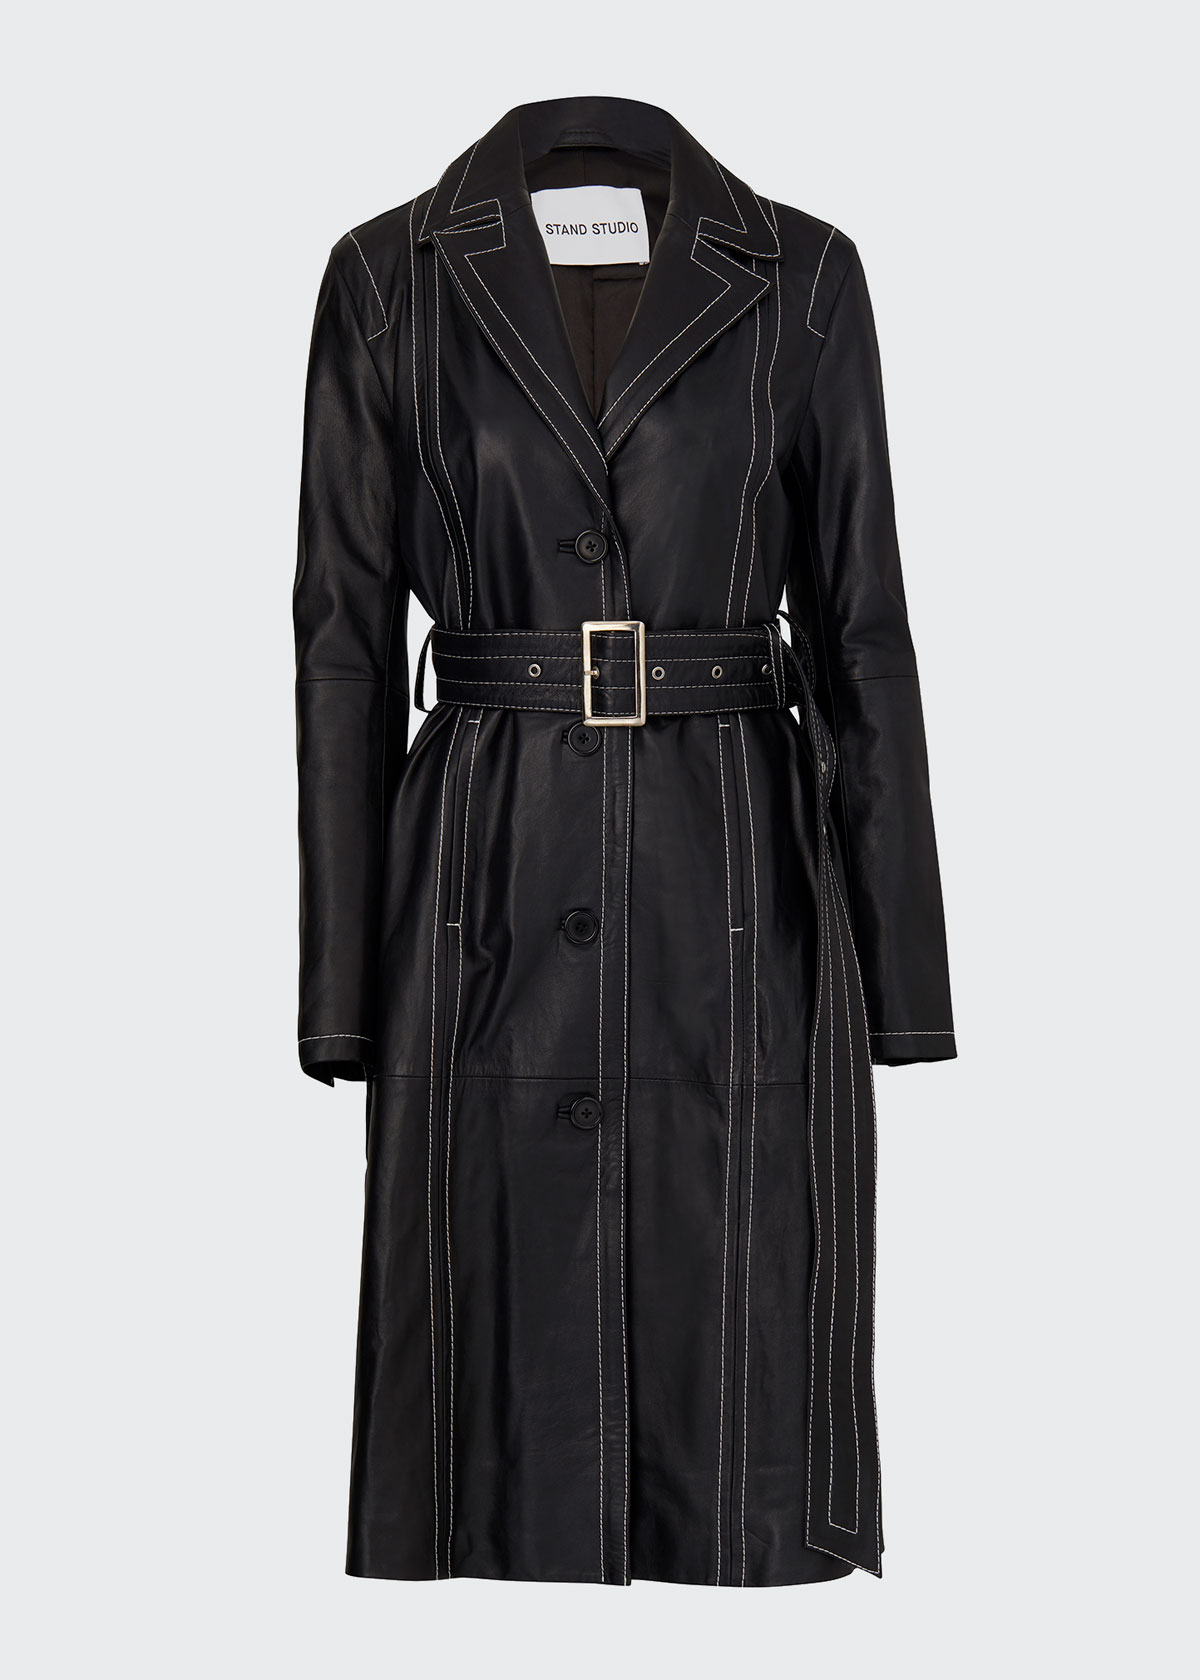 Stand Studio ALVIRA BELTED LEATHER COAT